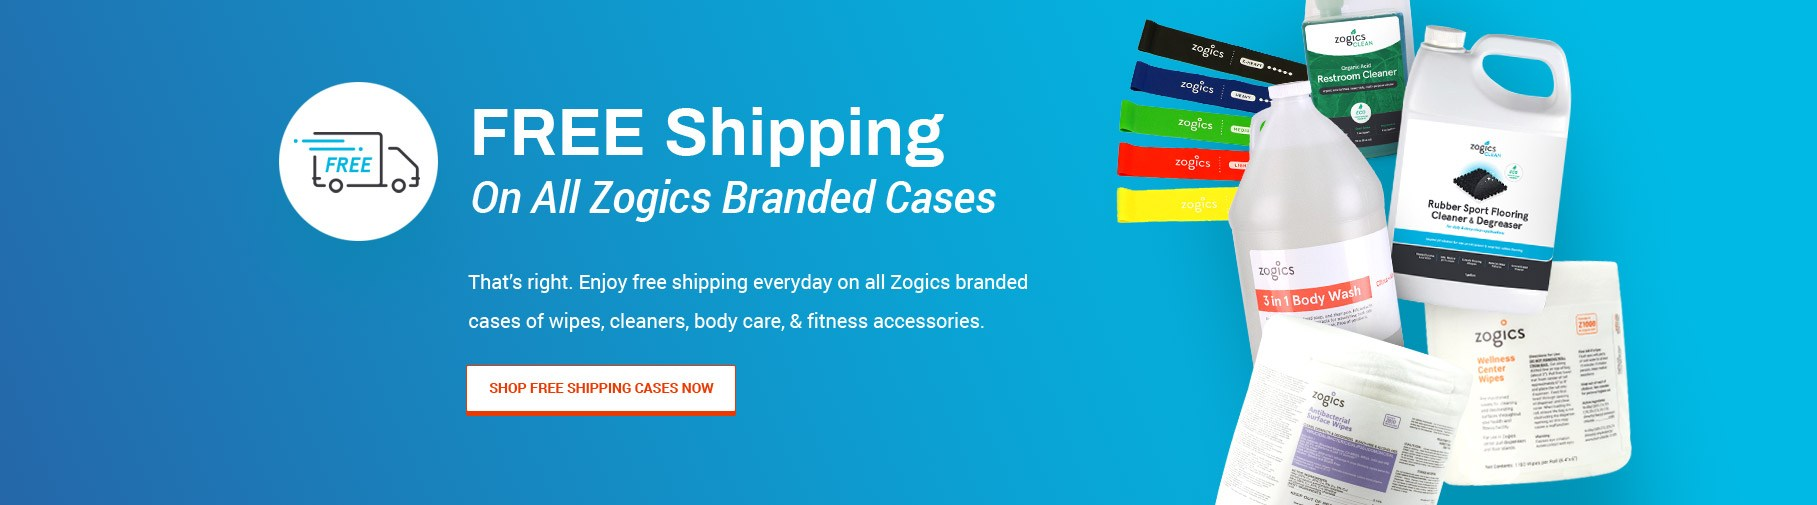 Free Shipping on all Zogics branded cases